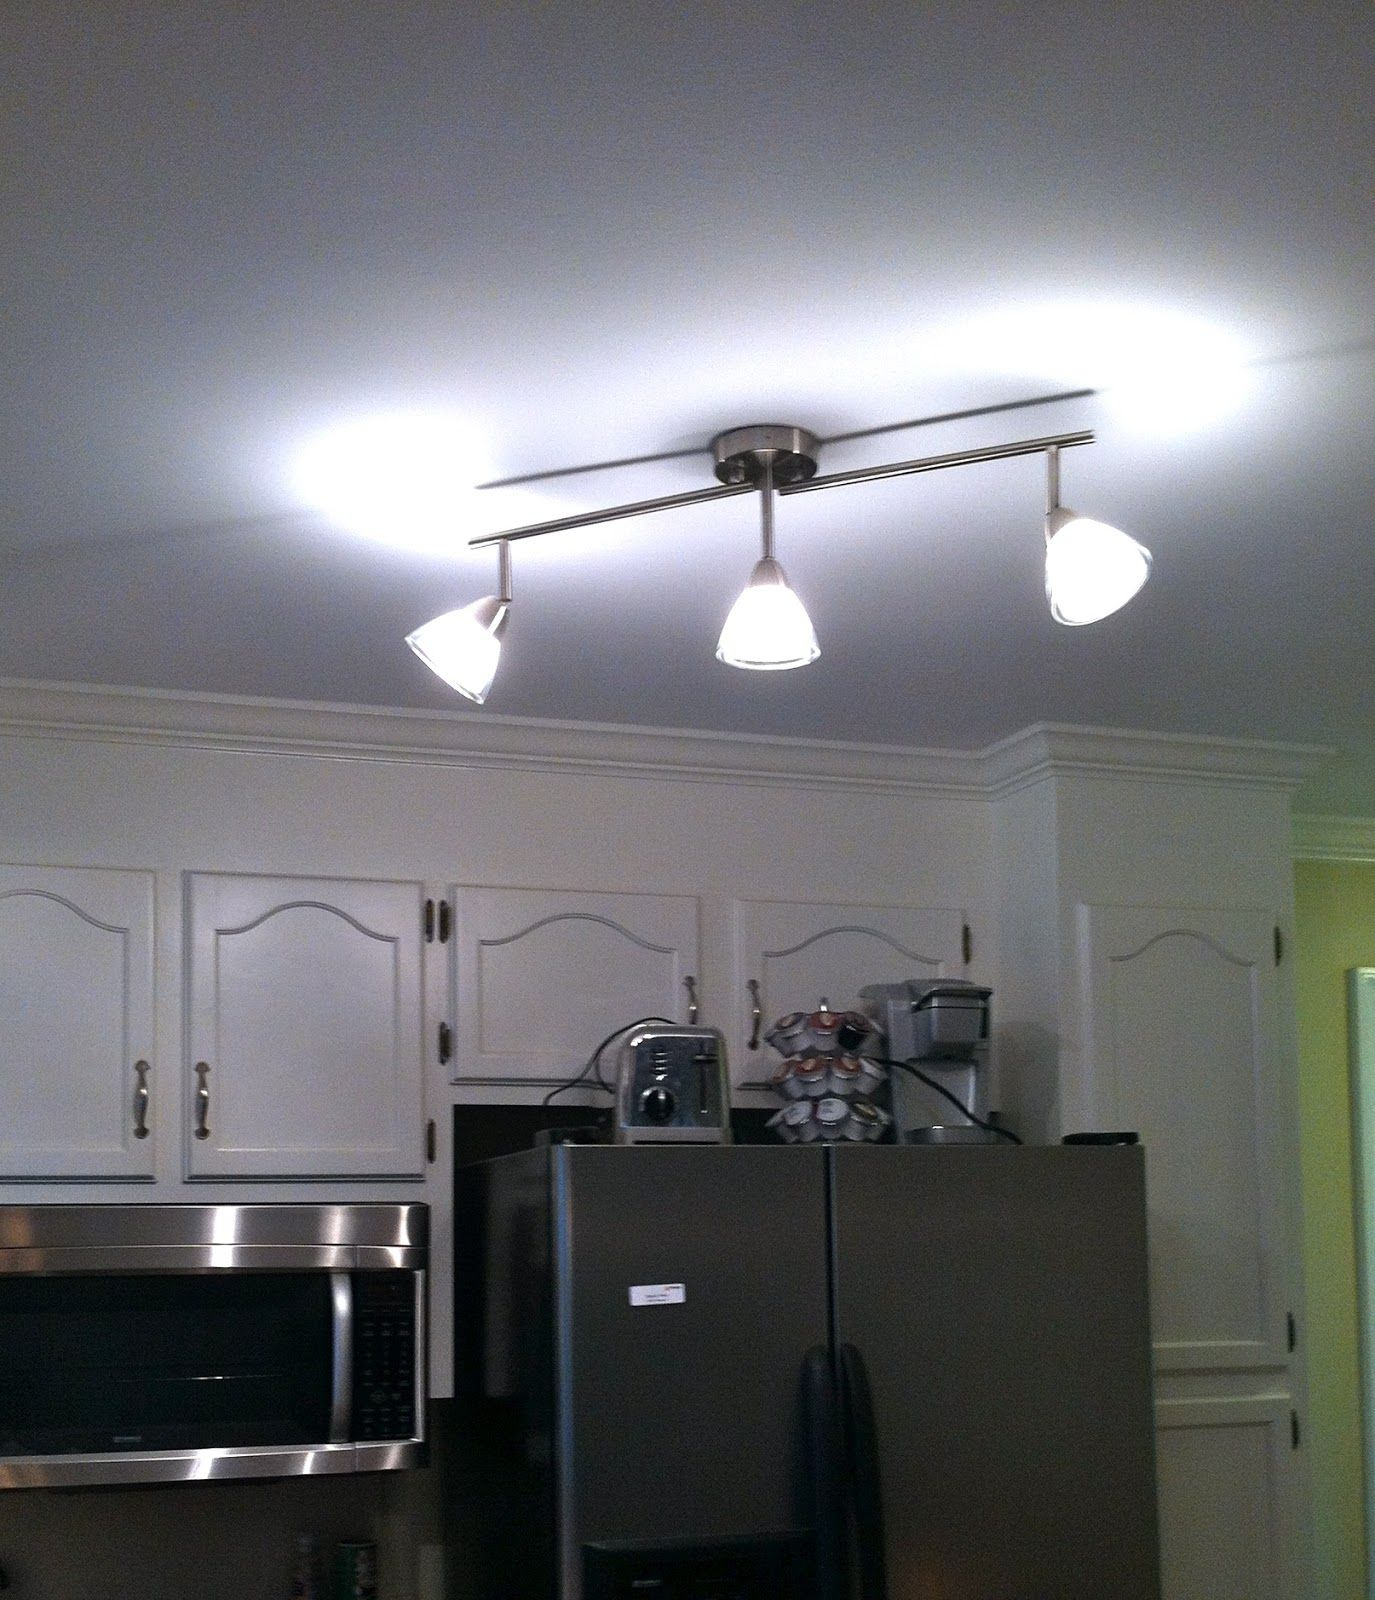 lowes kitchen light fixtures Next up was the porch light